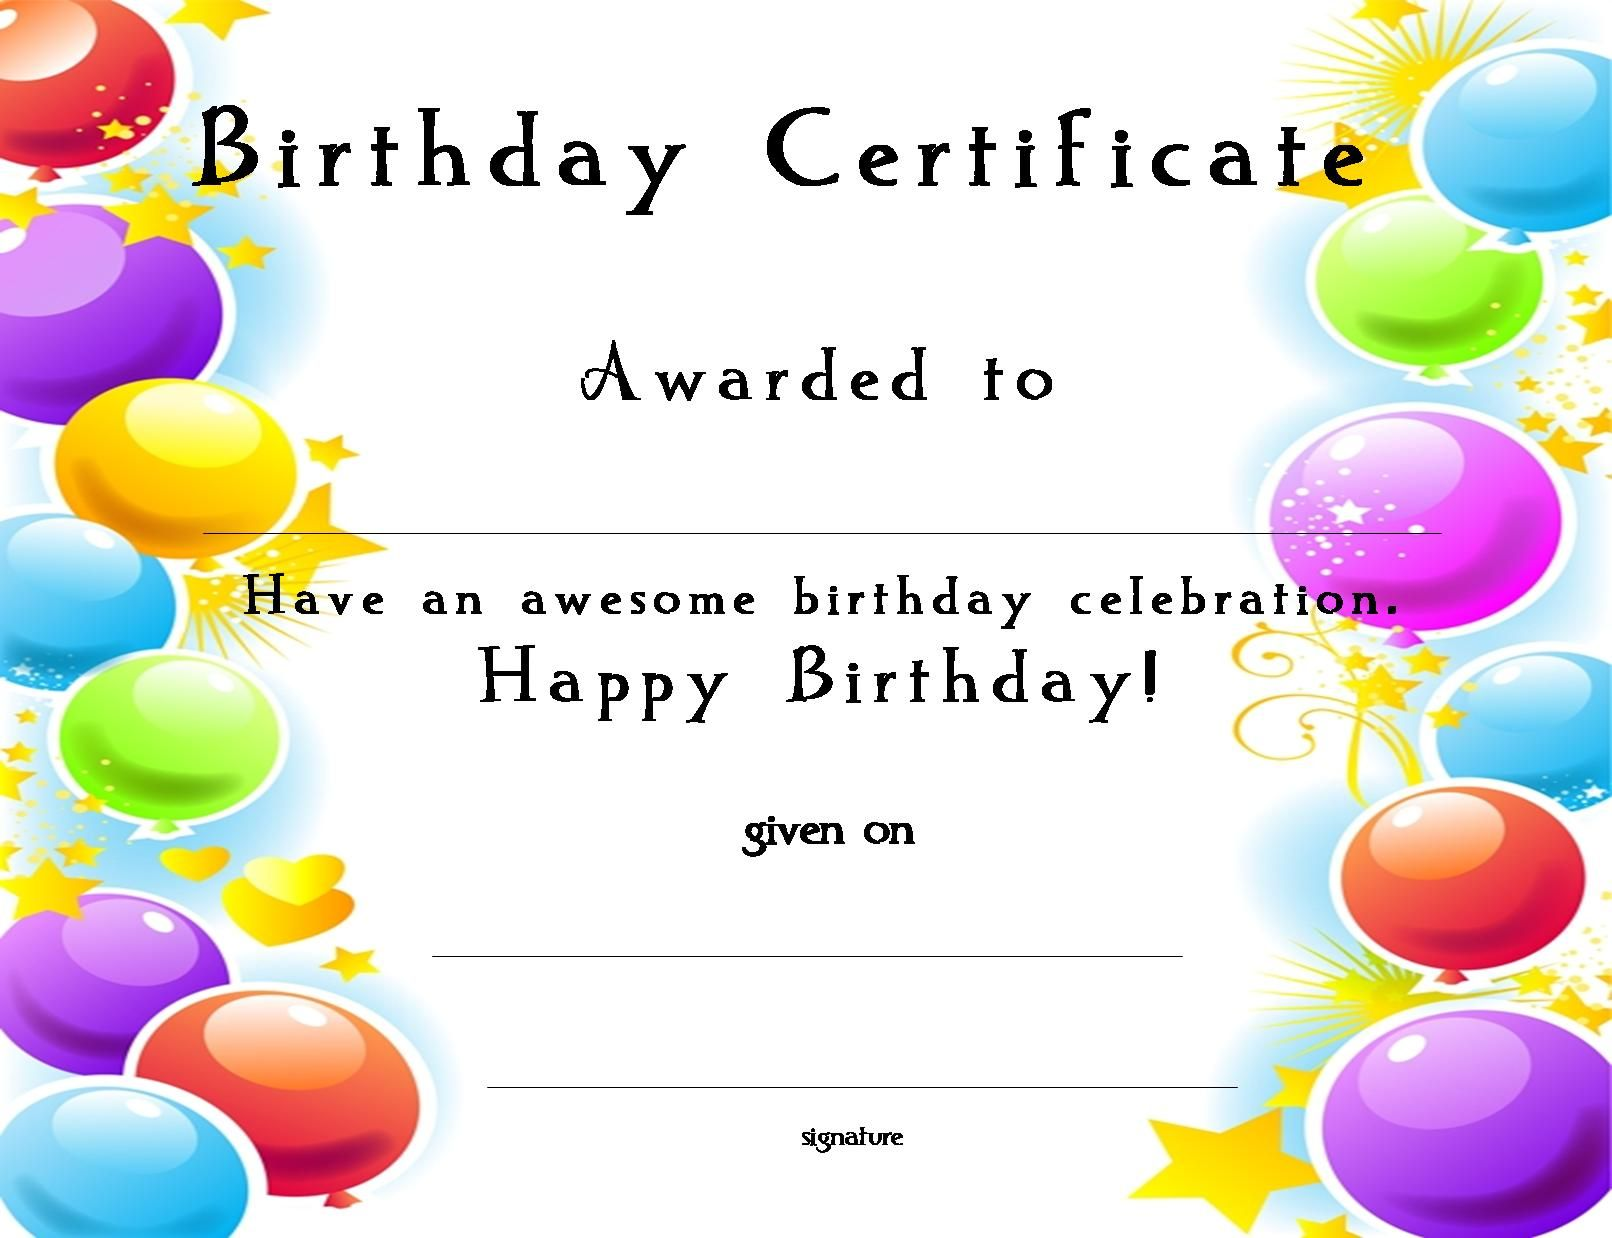 Certificatetemplate Happy Birthday Certificate For